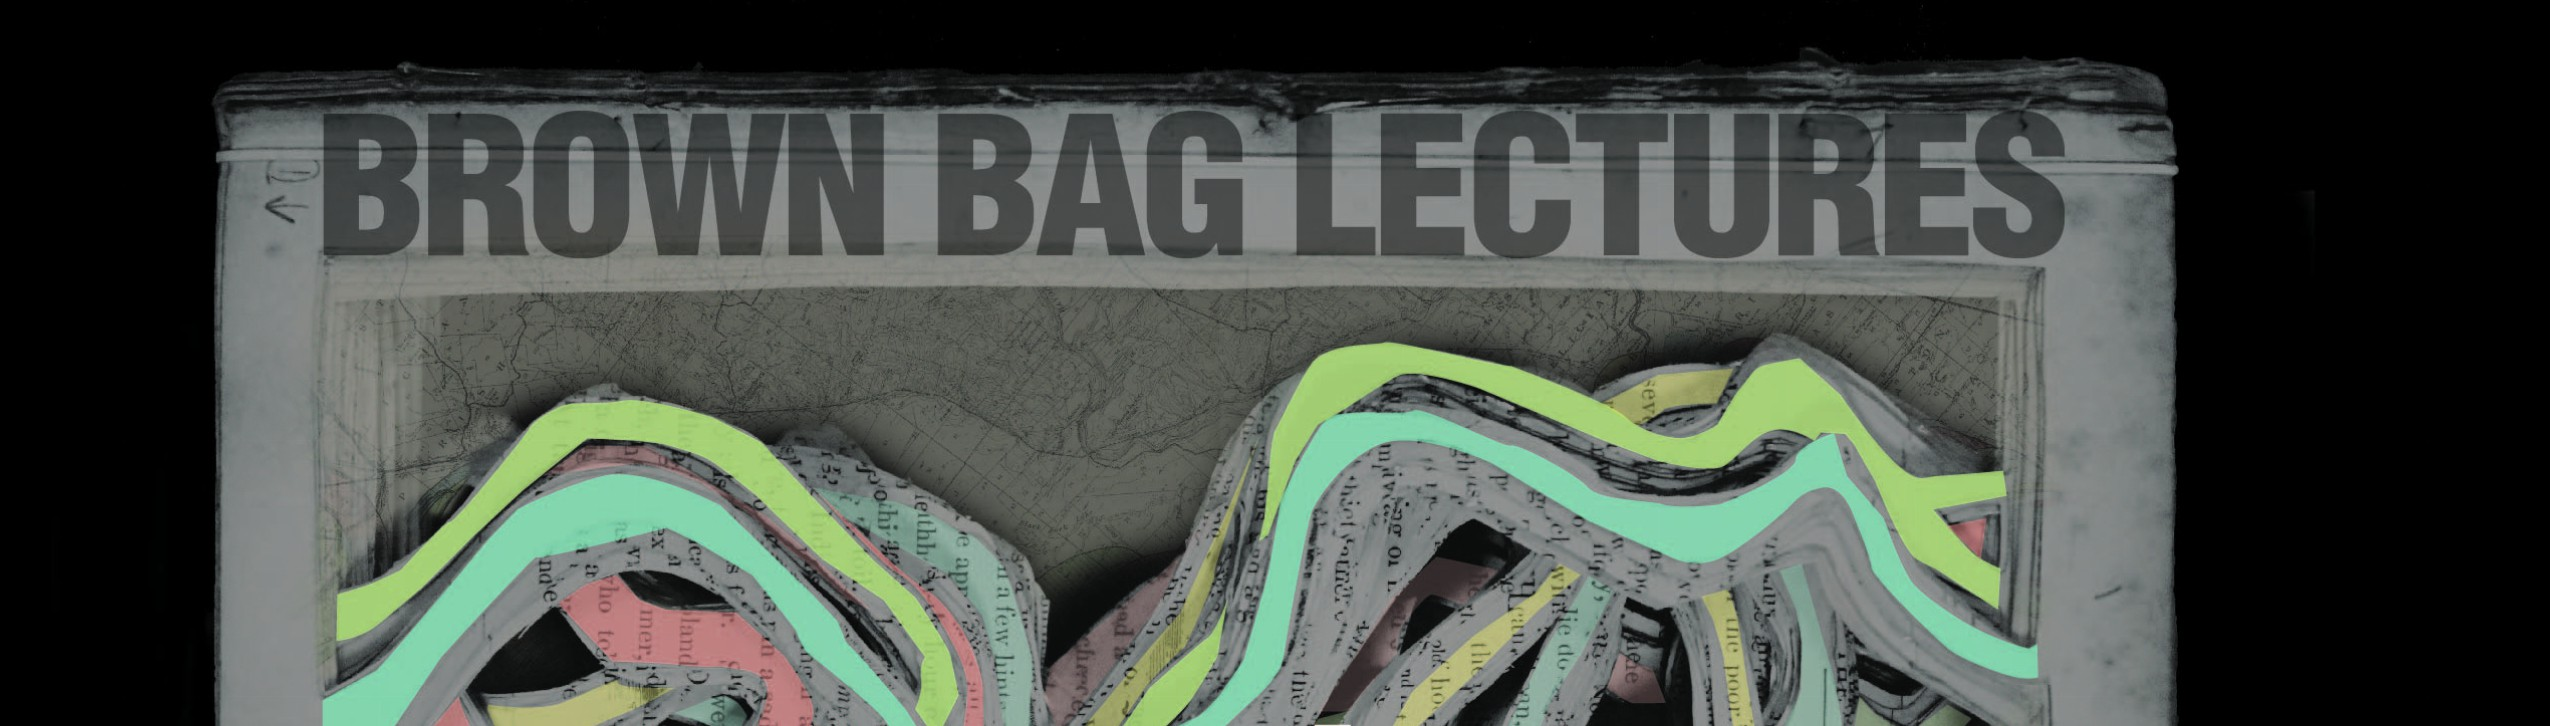 Brown Bag Lecture Series - Spring 2015